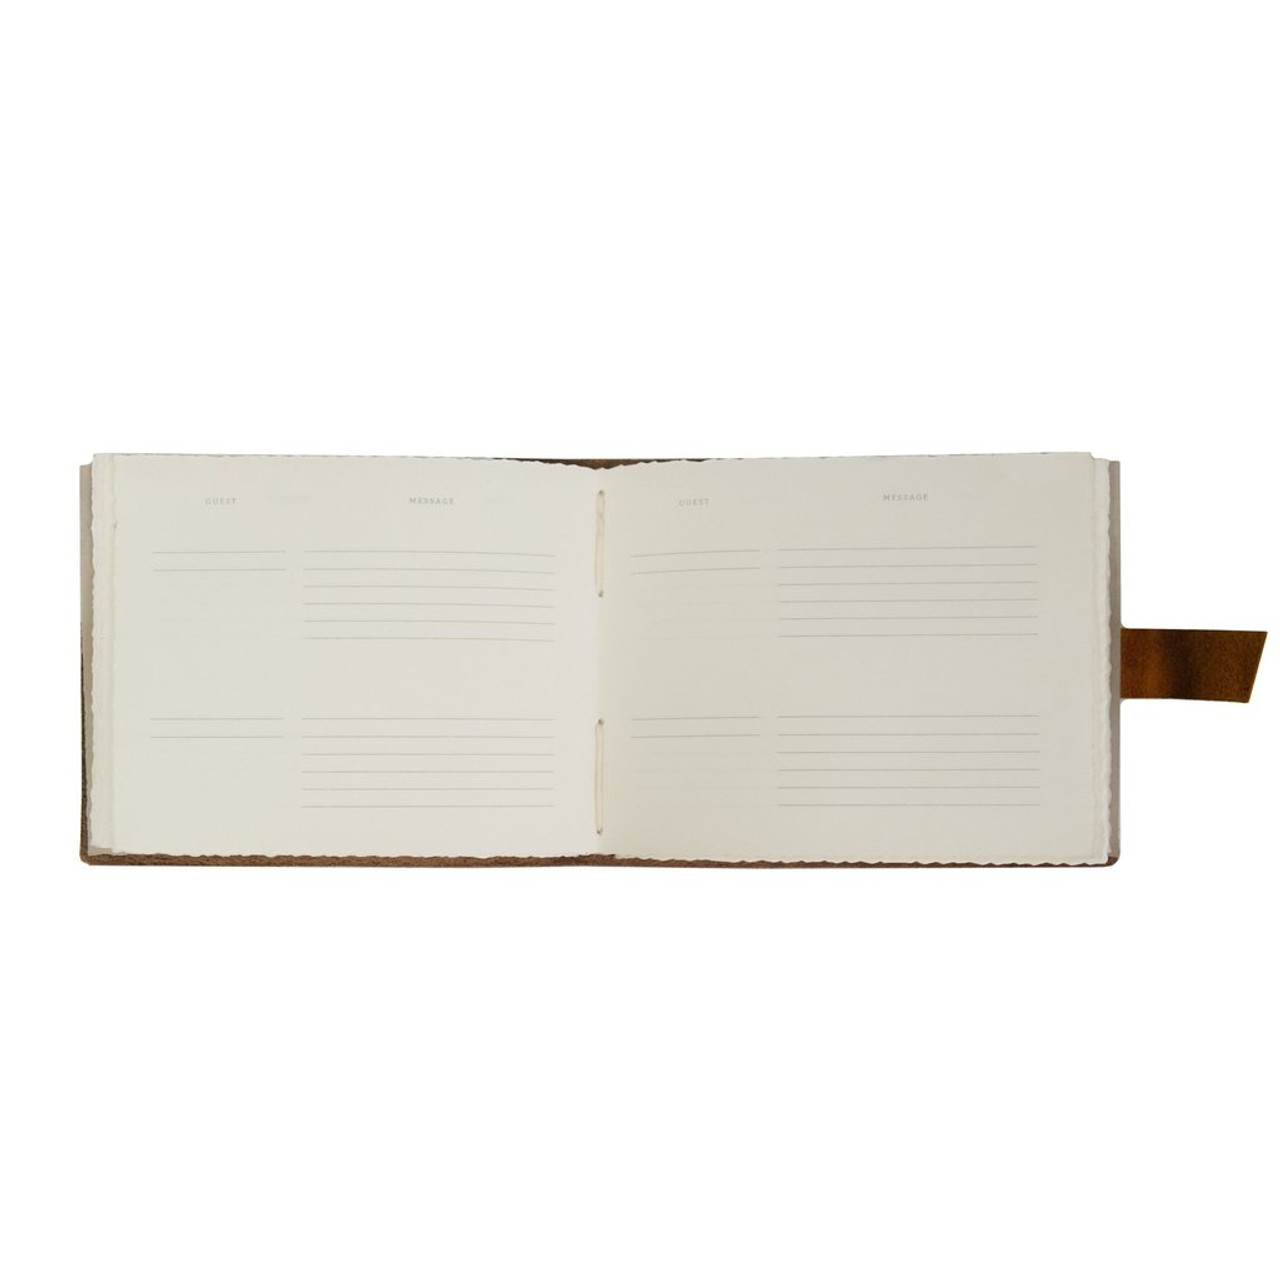 Templated Pages inside Rustico Leather Guest Book - Dark Brown